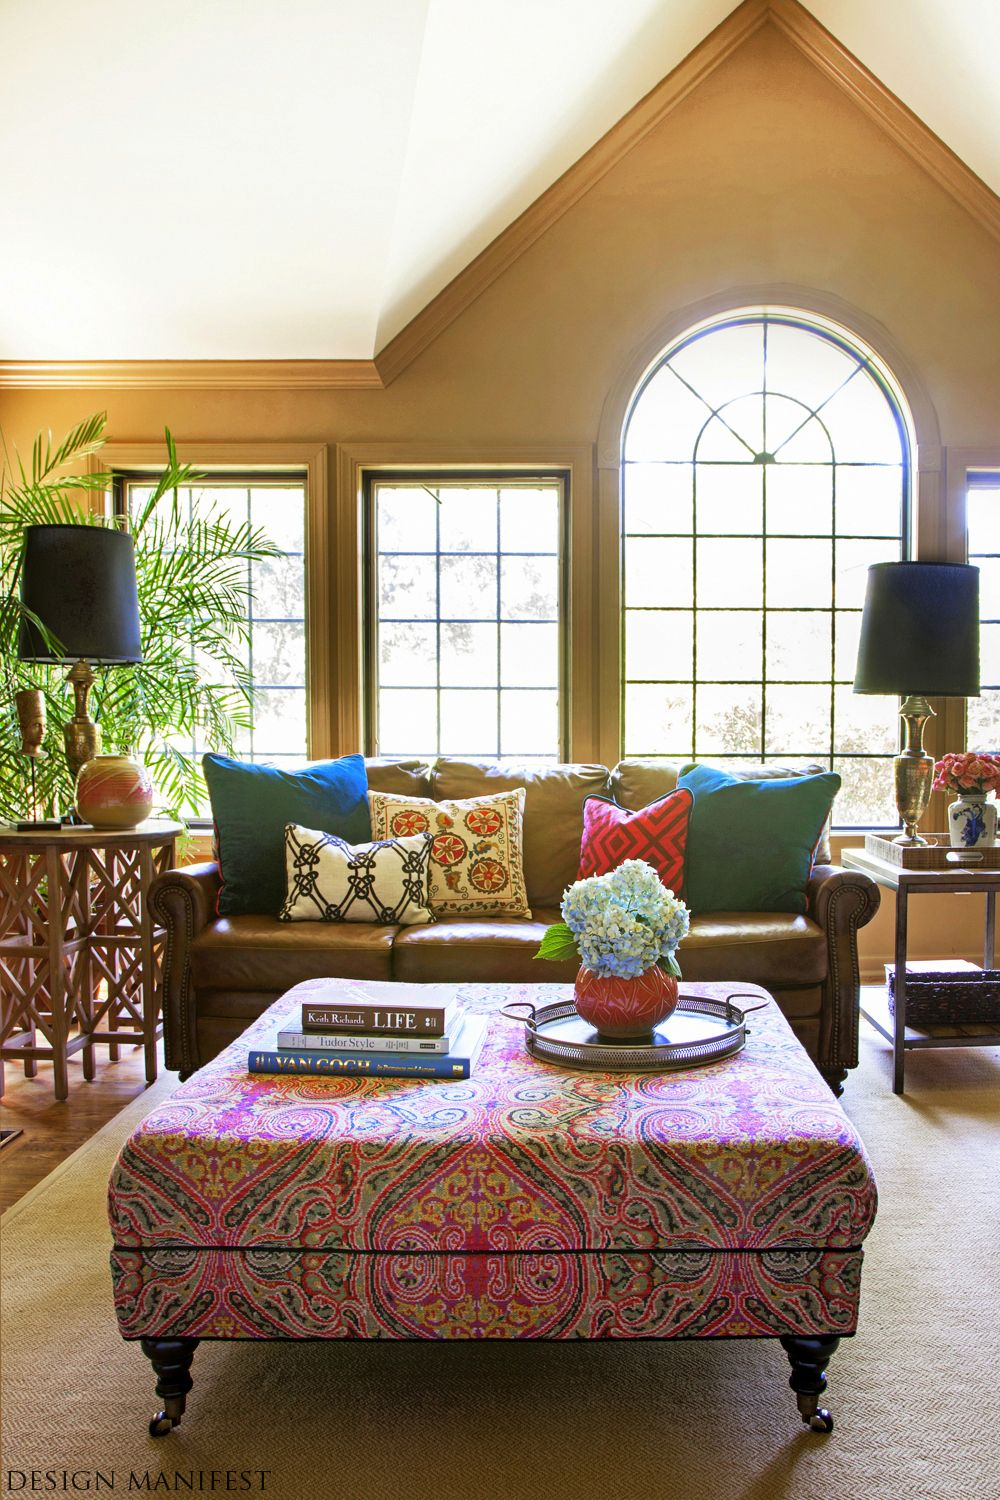 Design Manifest. Add some color | Bohemian style living ...